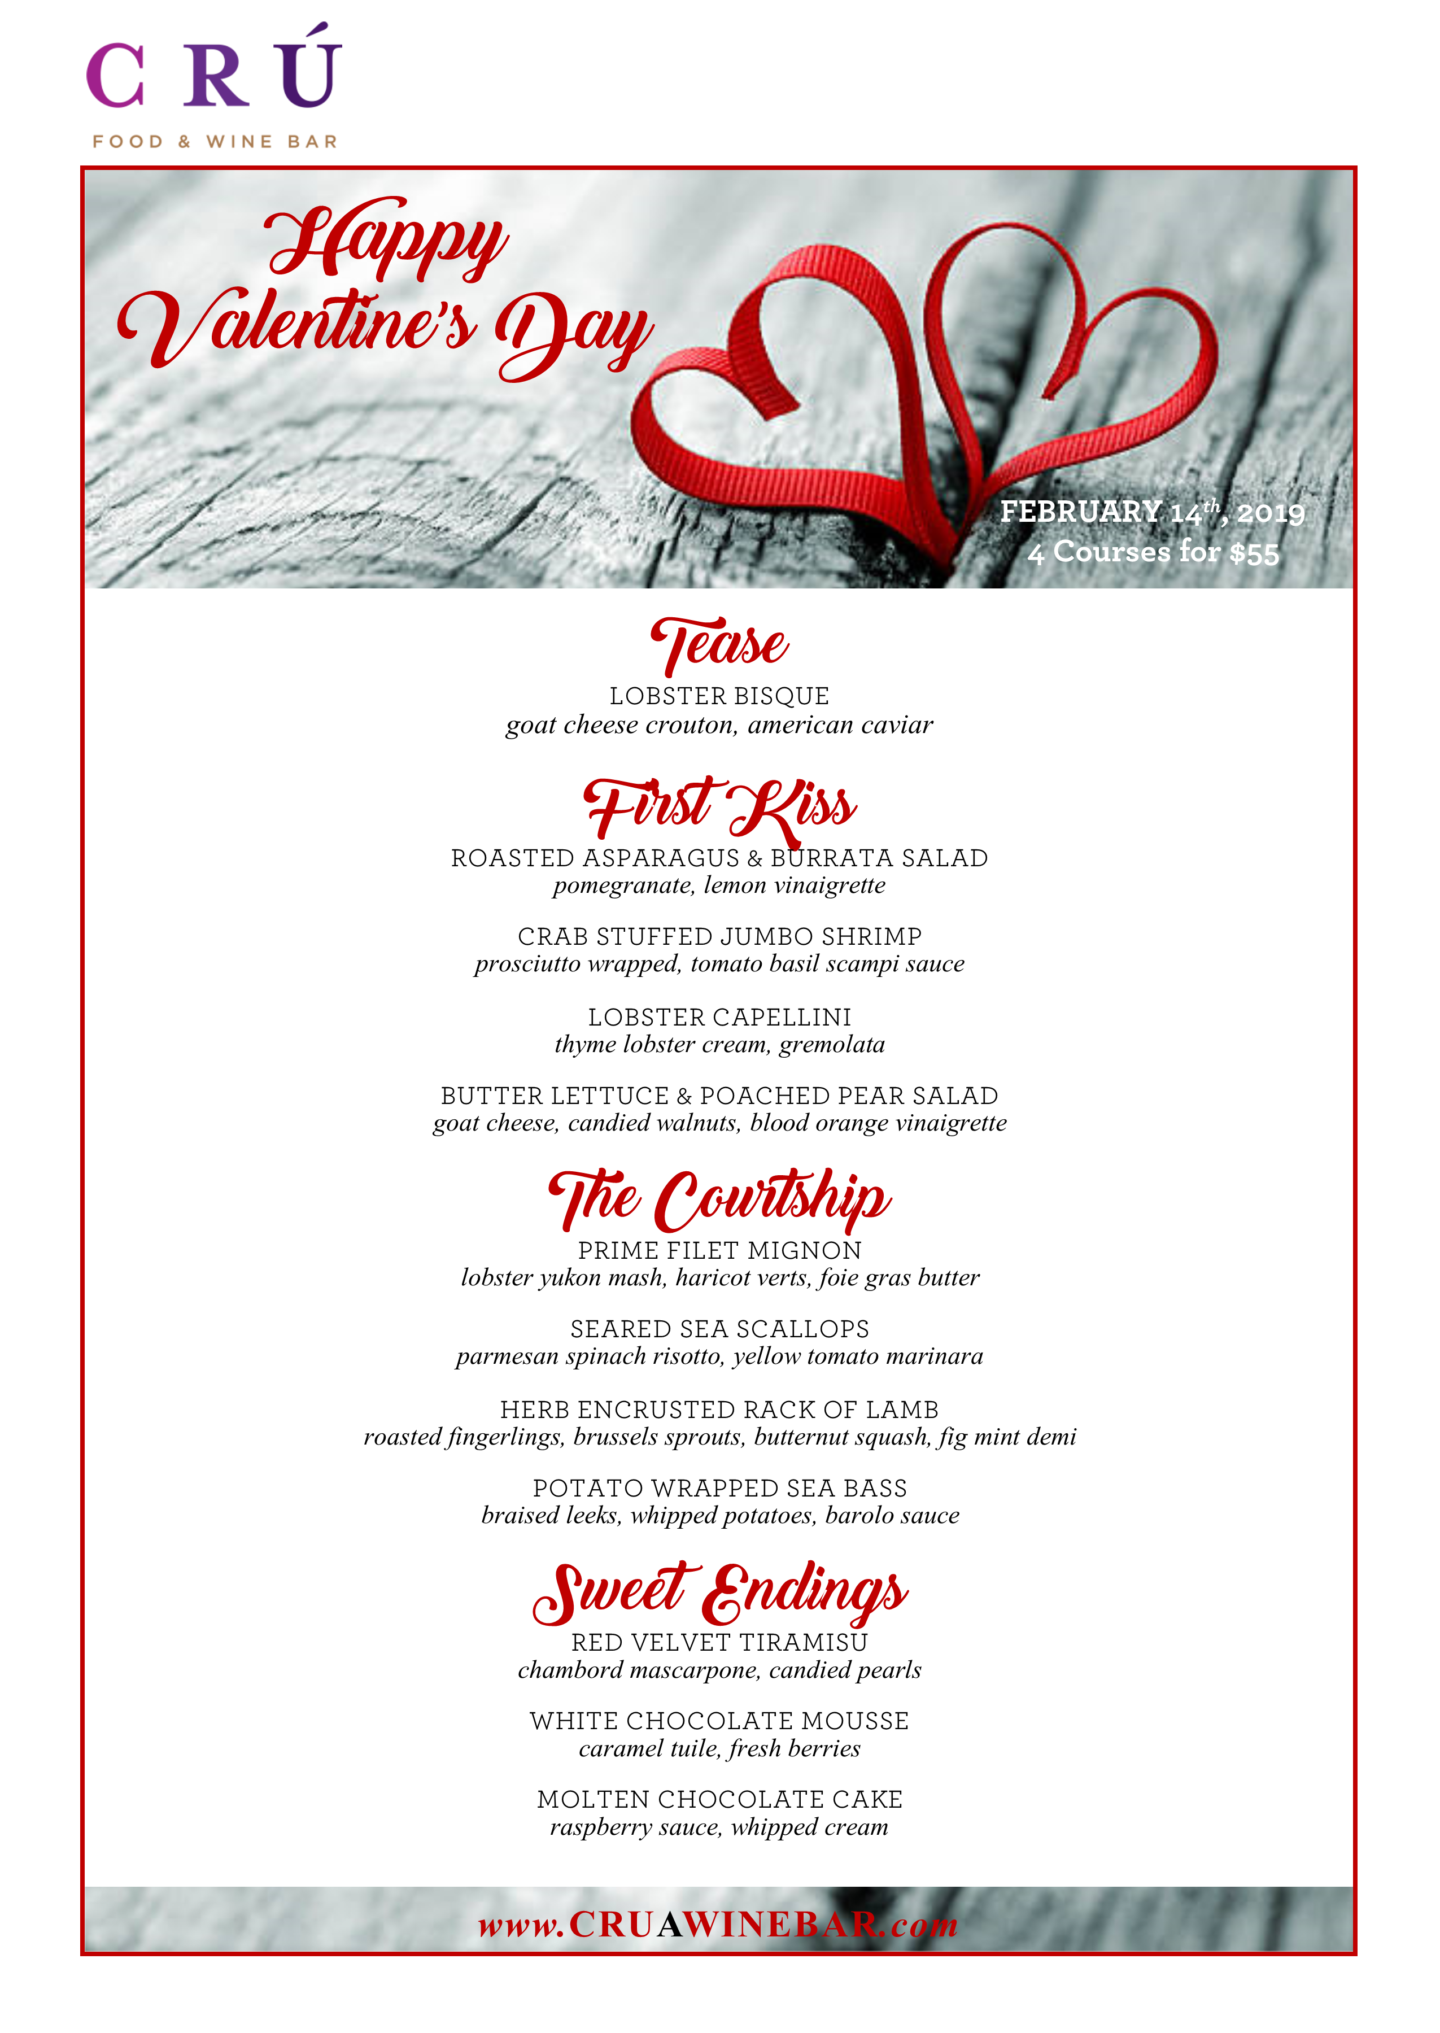 Cru Bar at The Summit at Fritz Farm's Valentine's Day menu